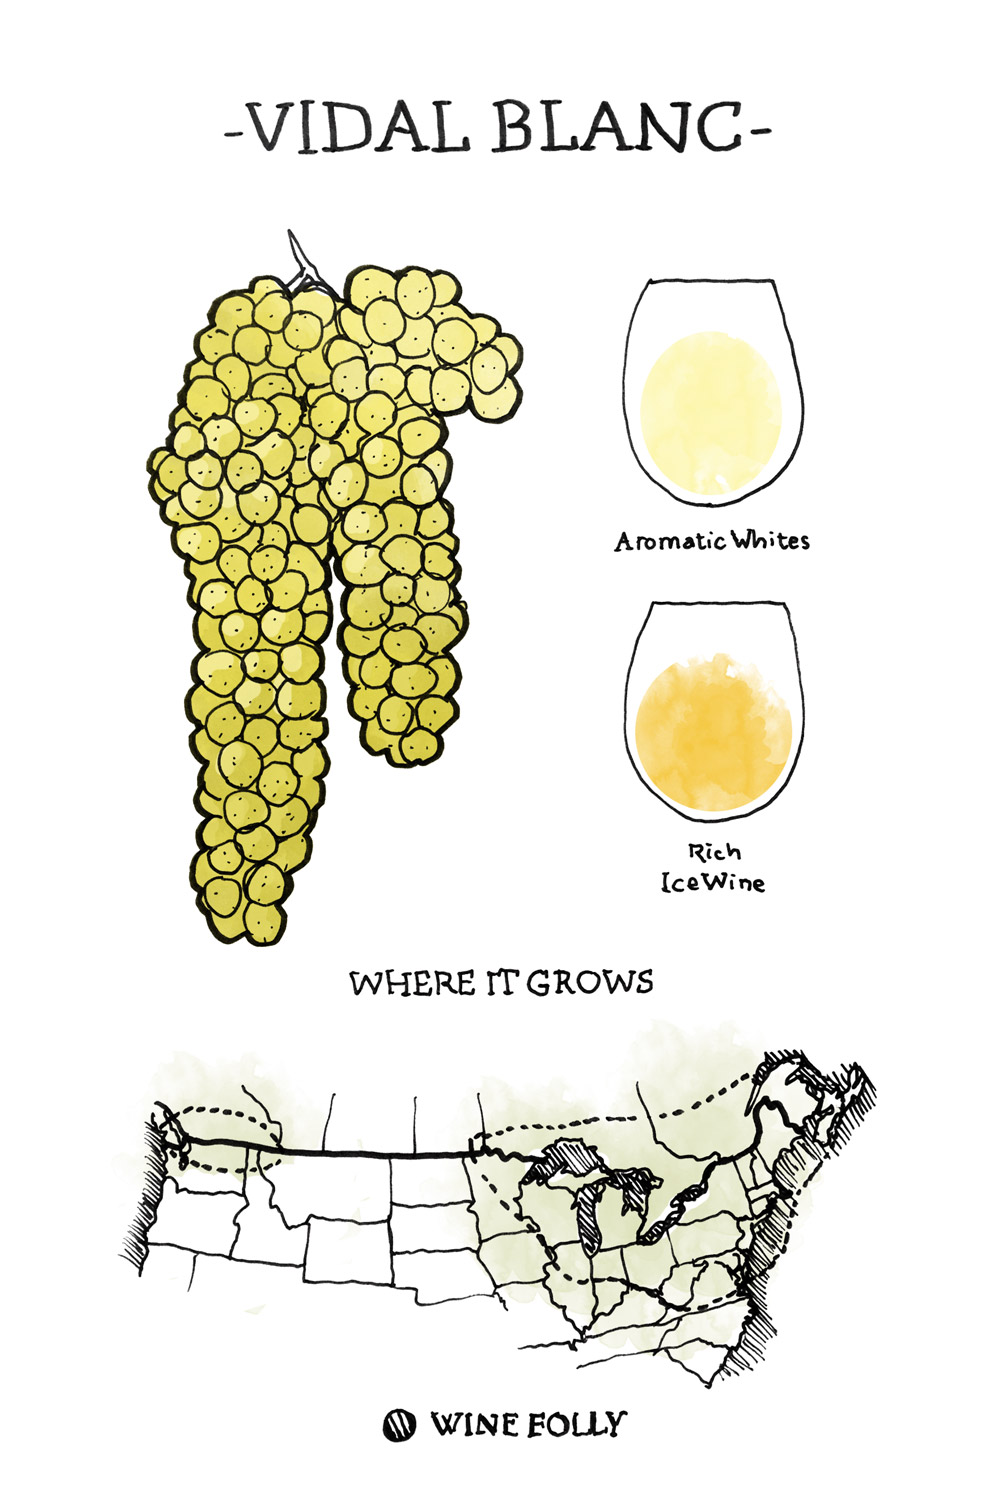 vidal-blanc Wine Grape Illustration and Regional Map by Wine Folly